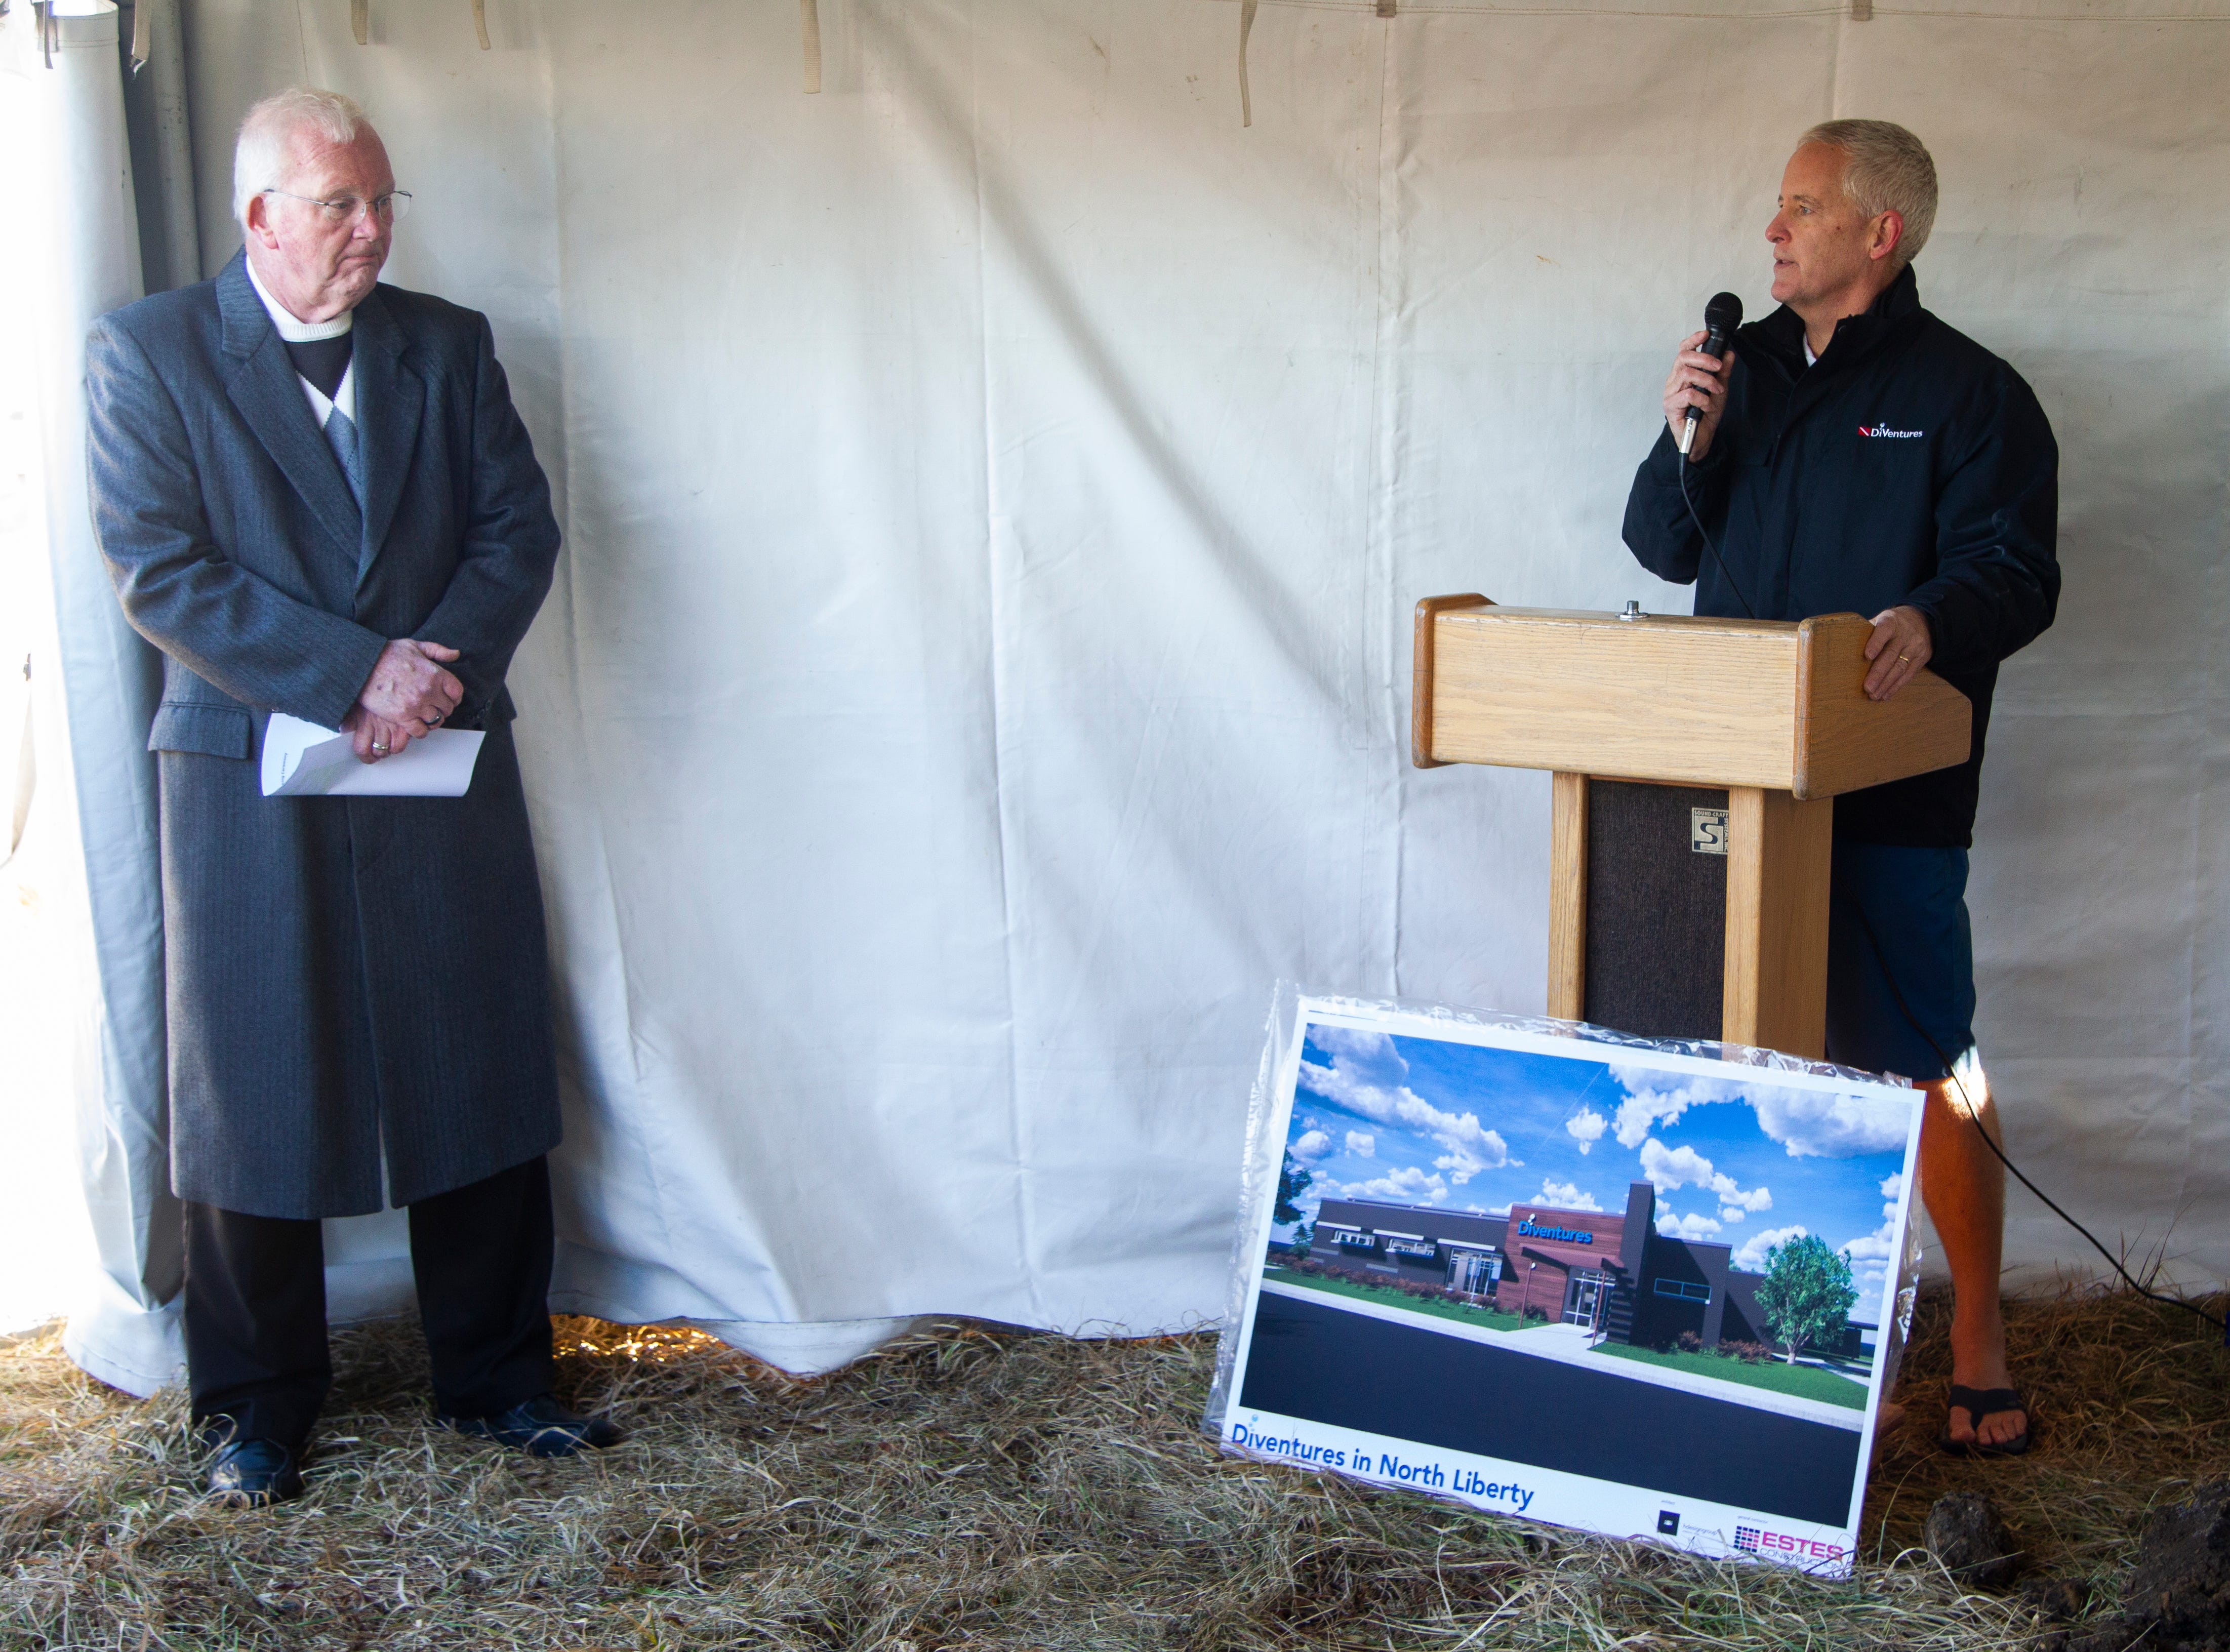 North Liberty Mayor Terry Donahue listens to Diventures founder Dean Hollis speak during a groundbreaking event for a new Diventures store location on Thursday, Jan. 3, 2019, at the 1895 West Penn Street in North Liberty, Iowa.